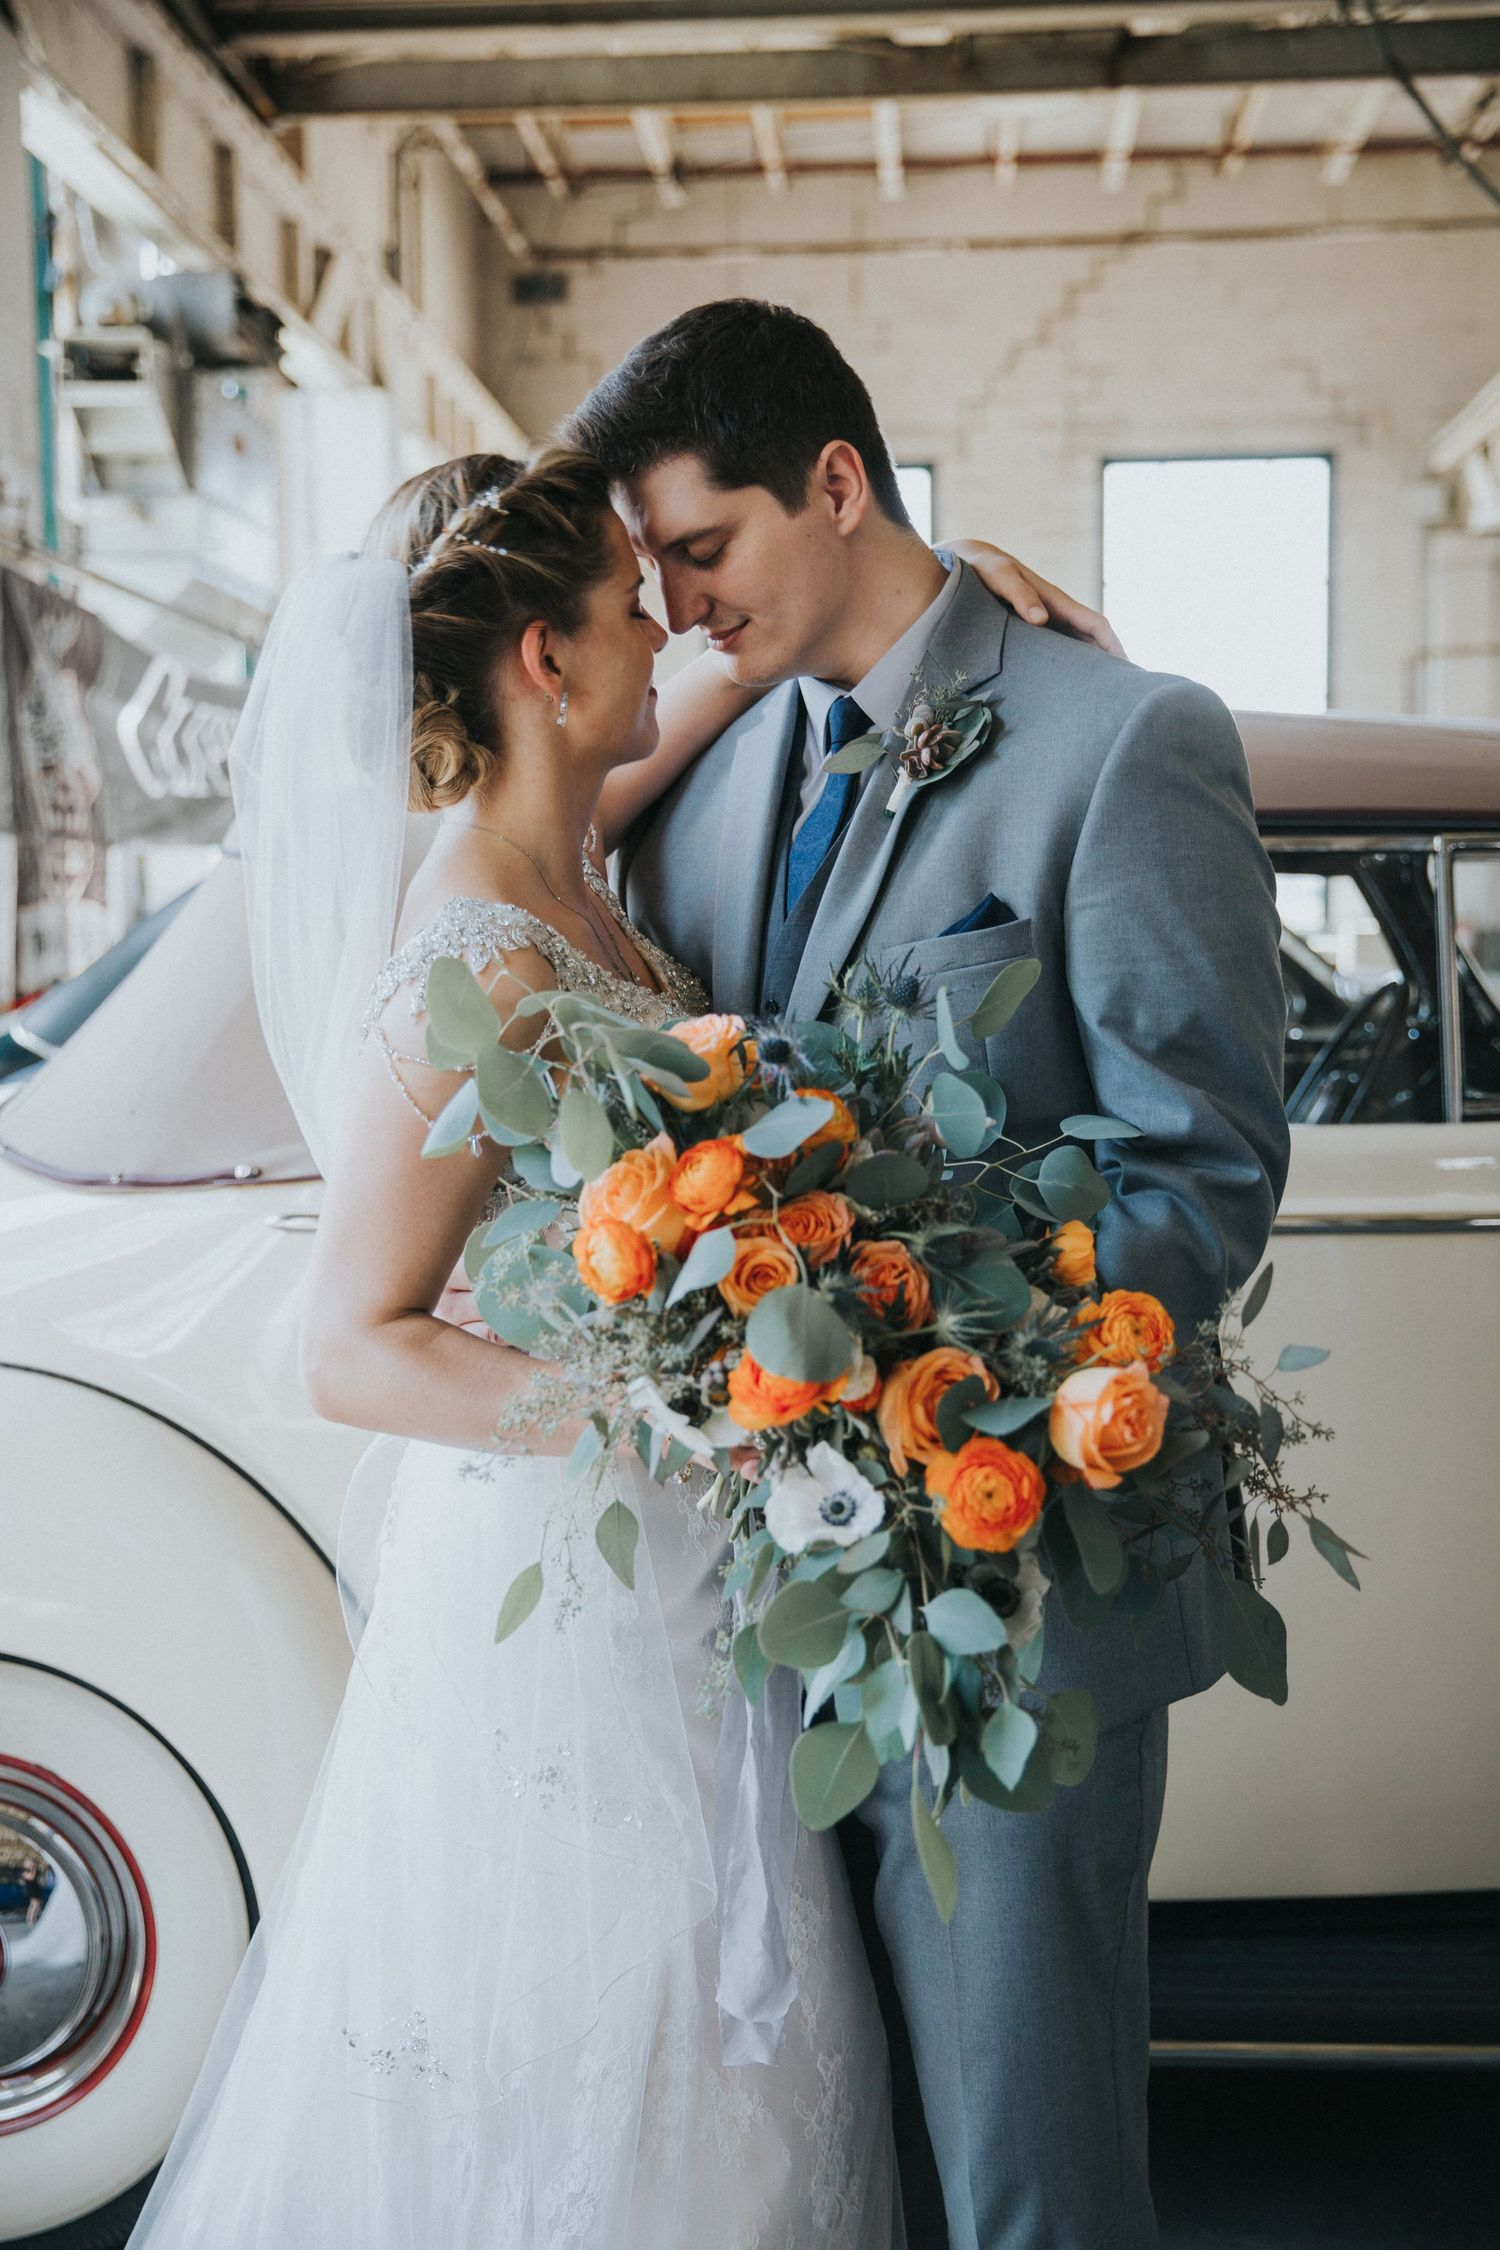 Couple ties knot at Packard Proving Grounds in Michigan. Rustic, industrial, summer wedding.